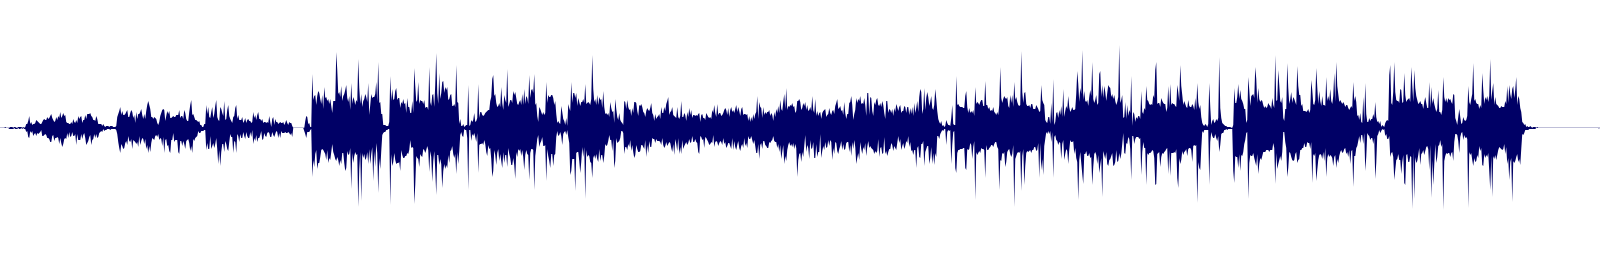 waveform of track #135490